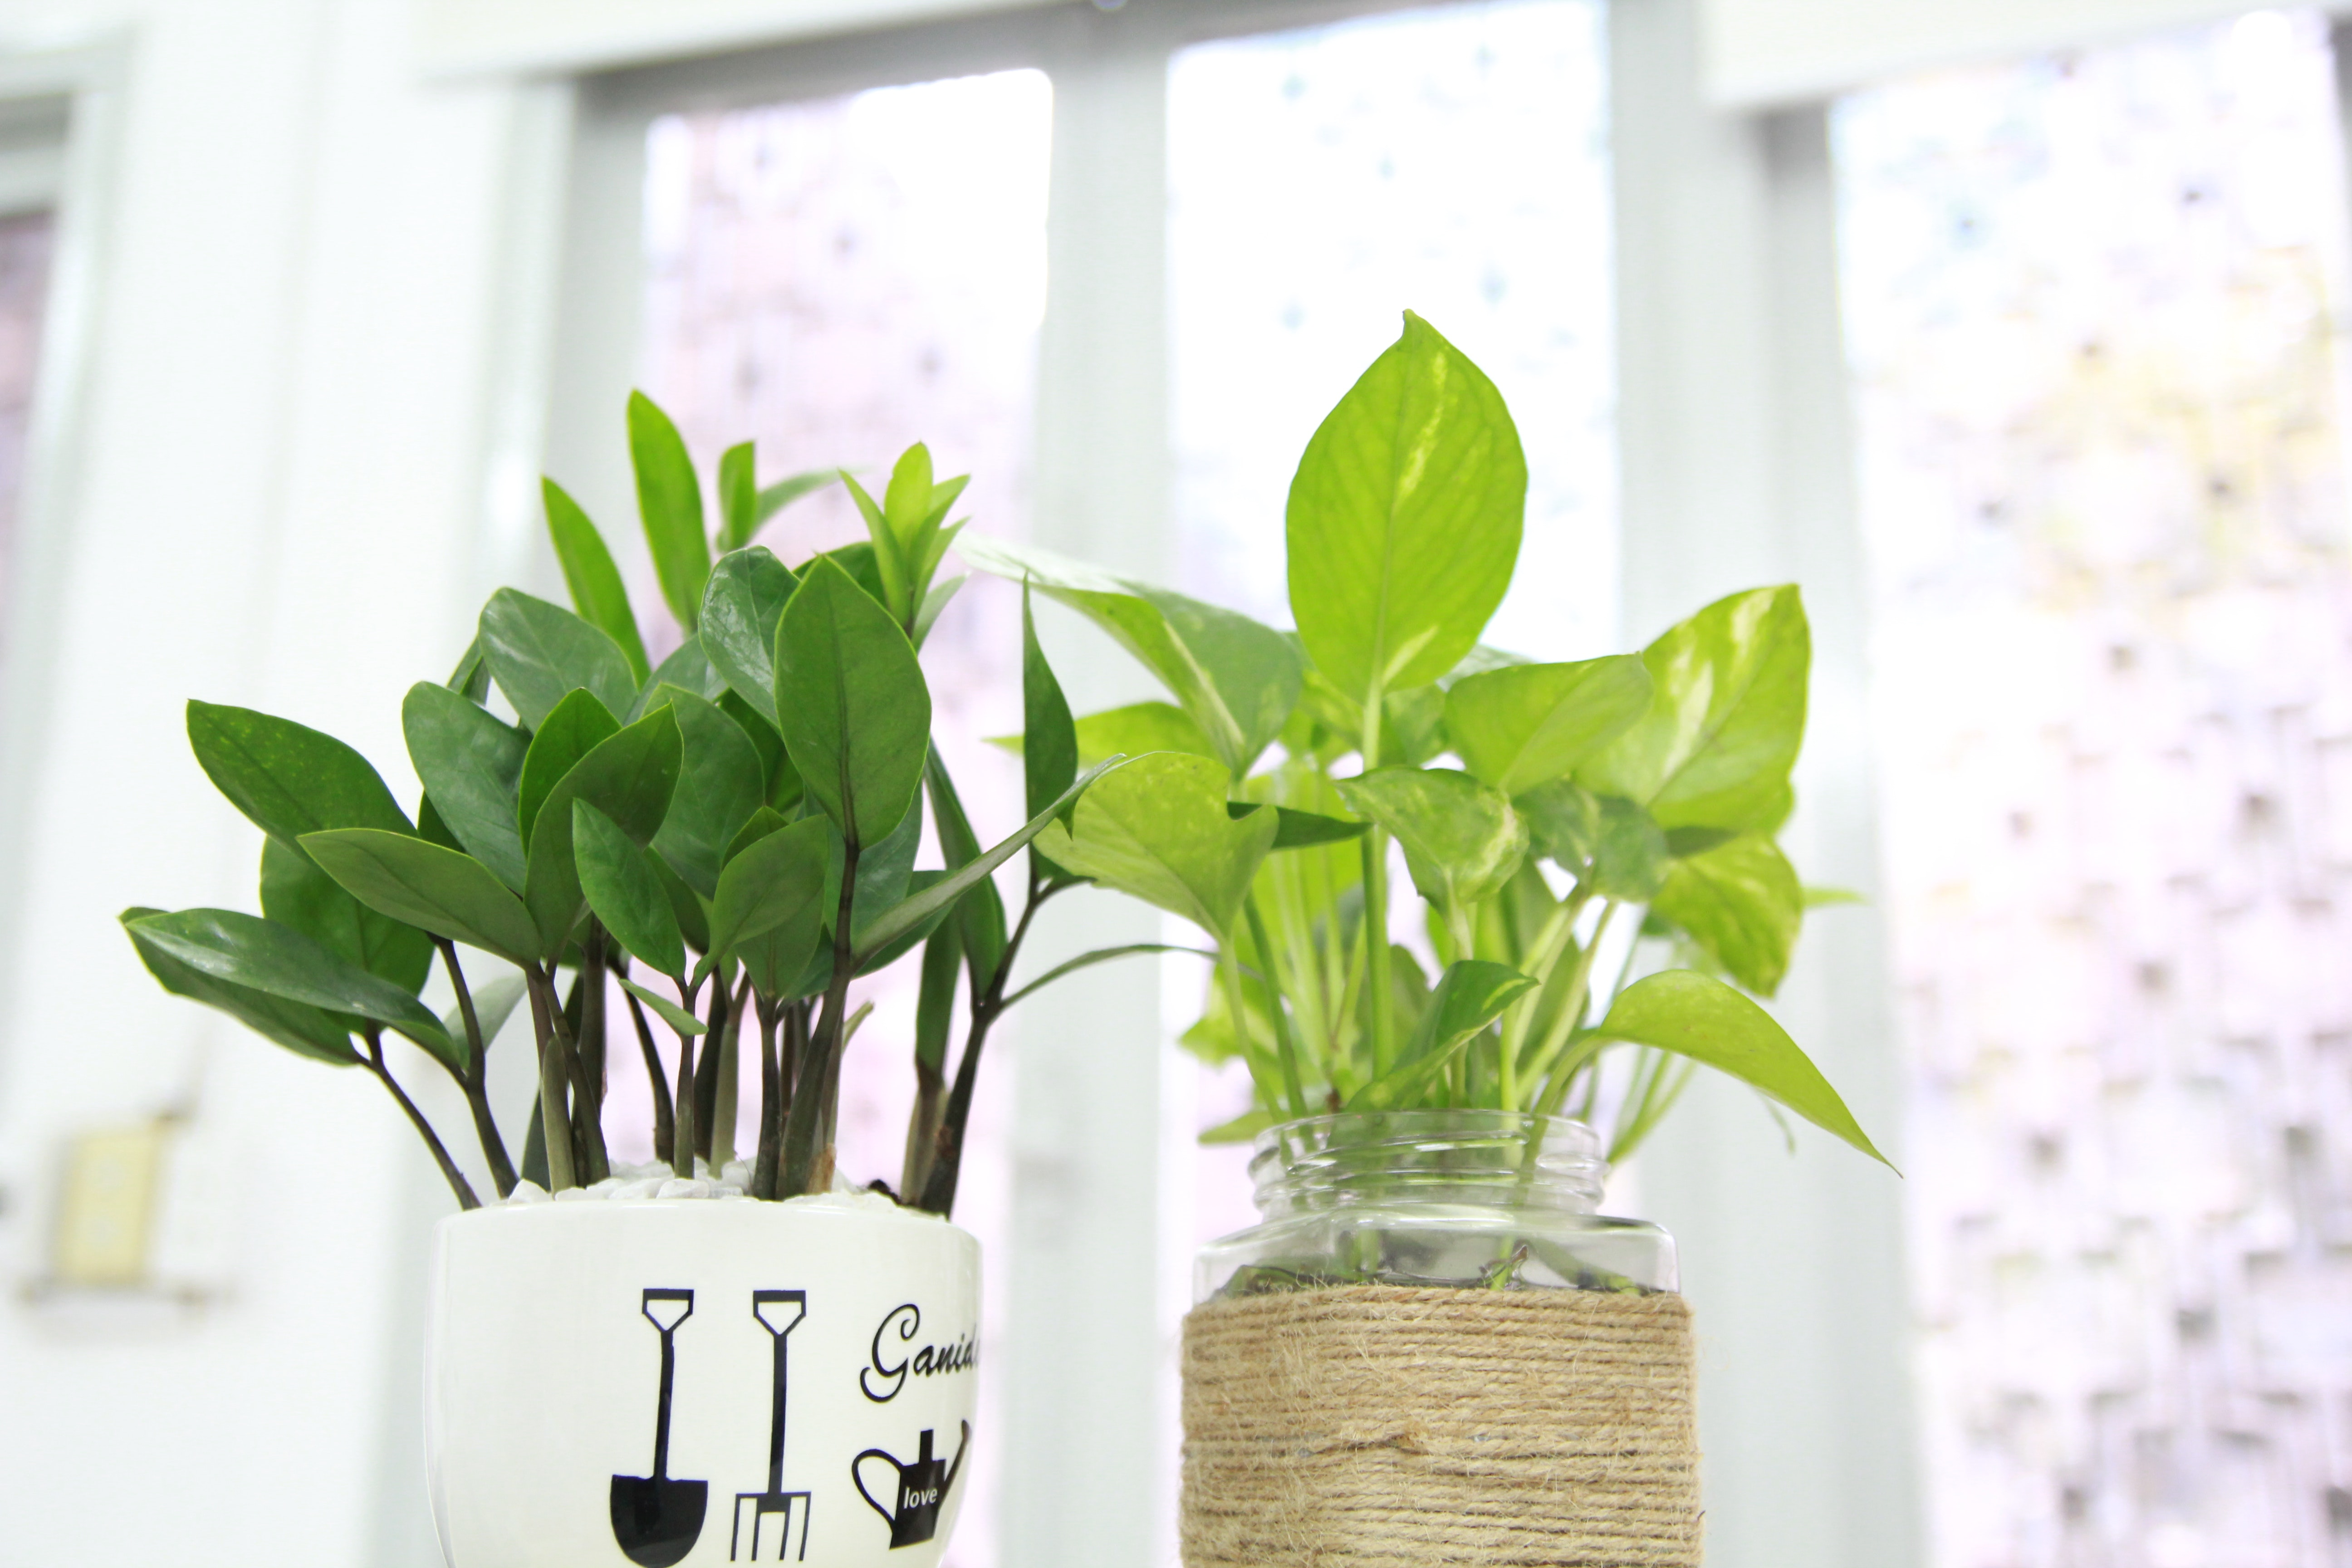 Two houseplants by a window